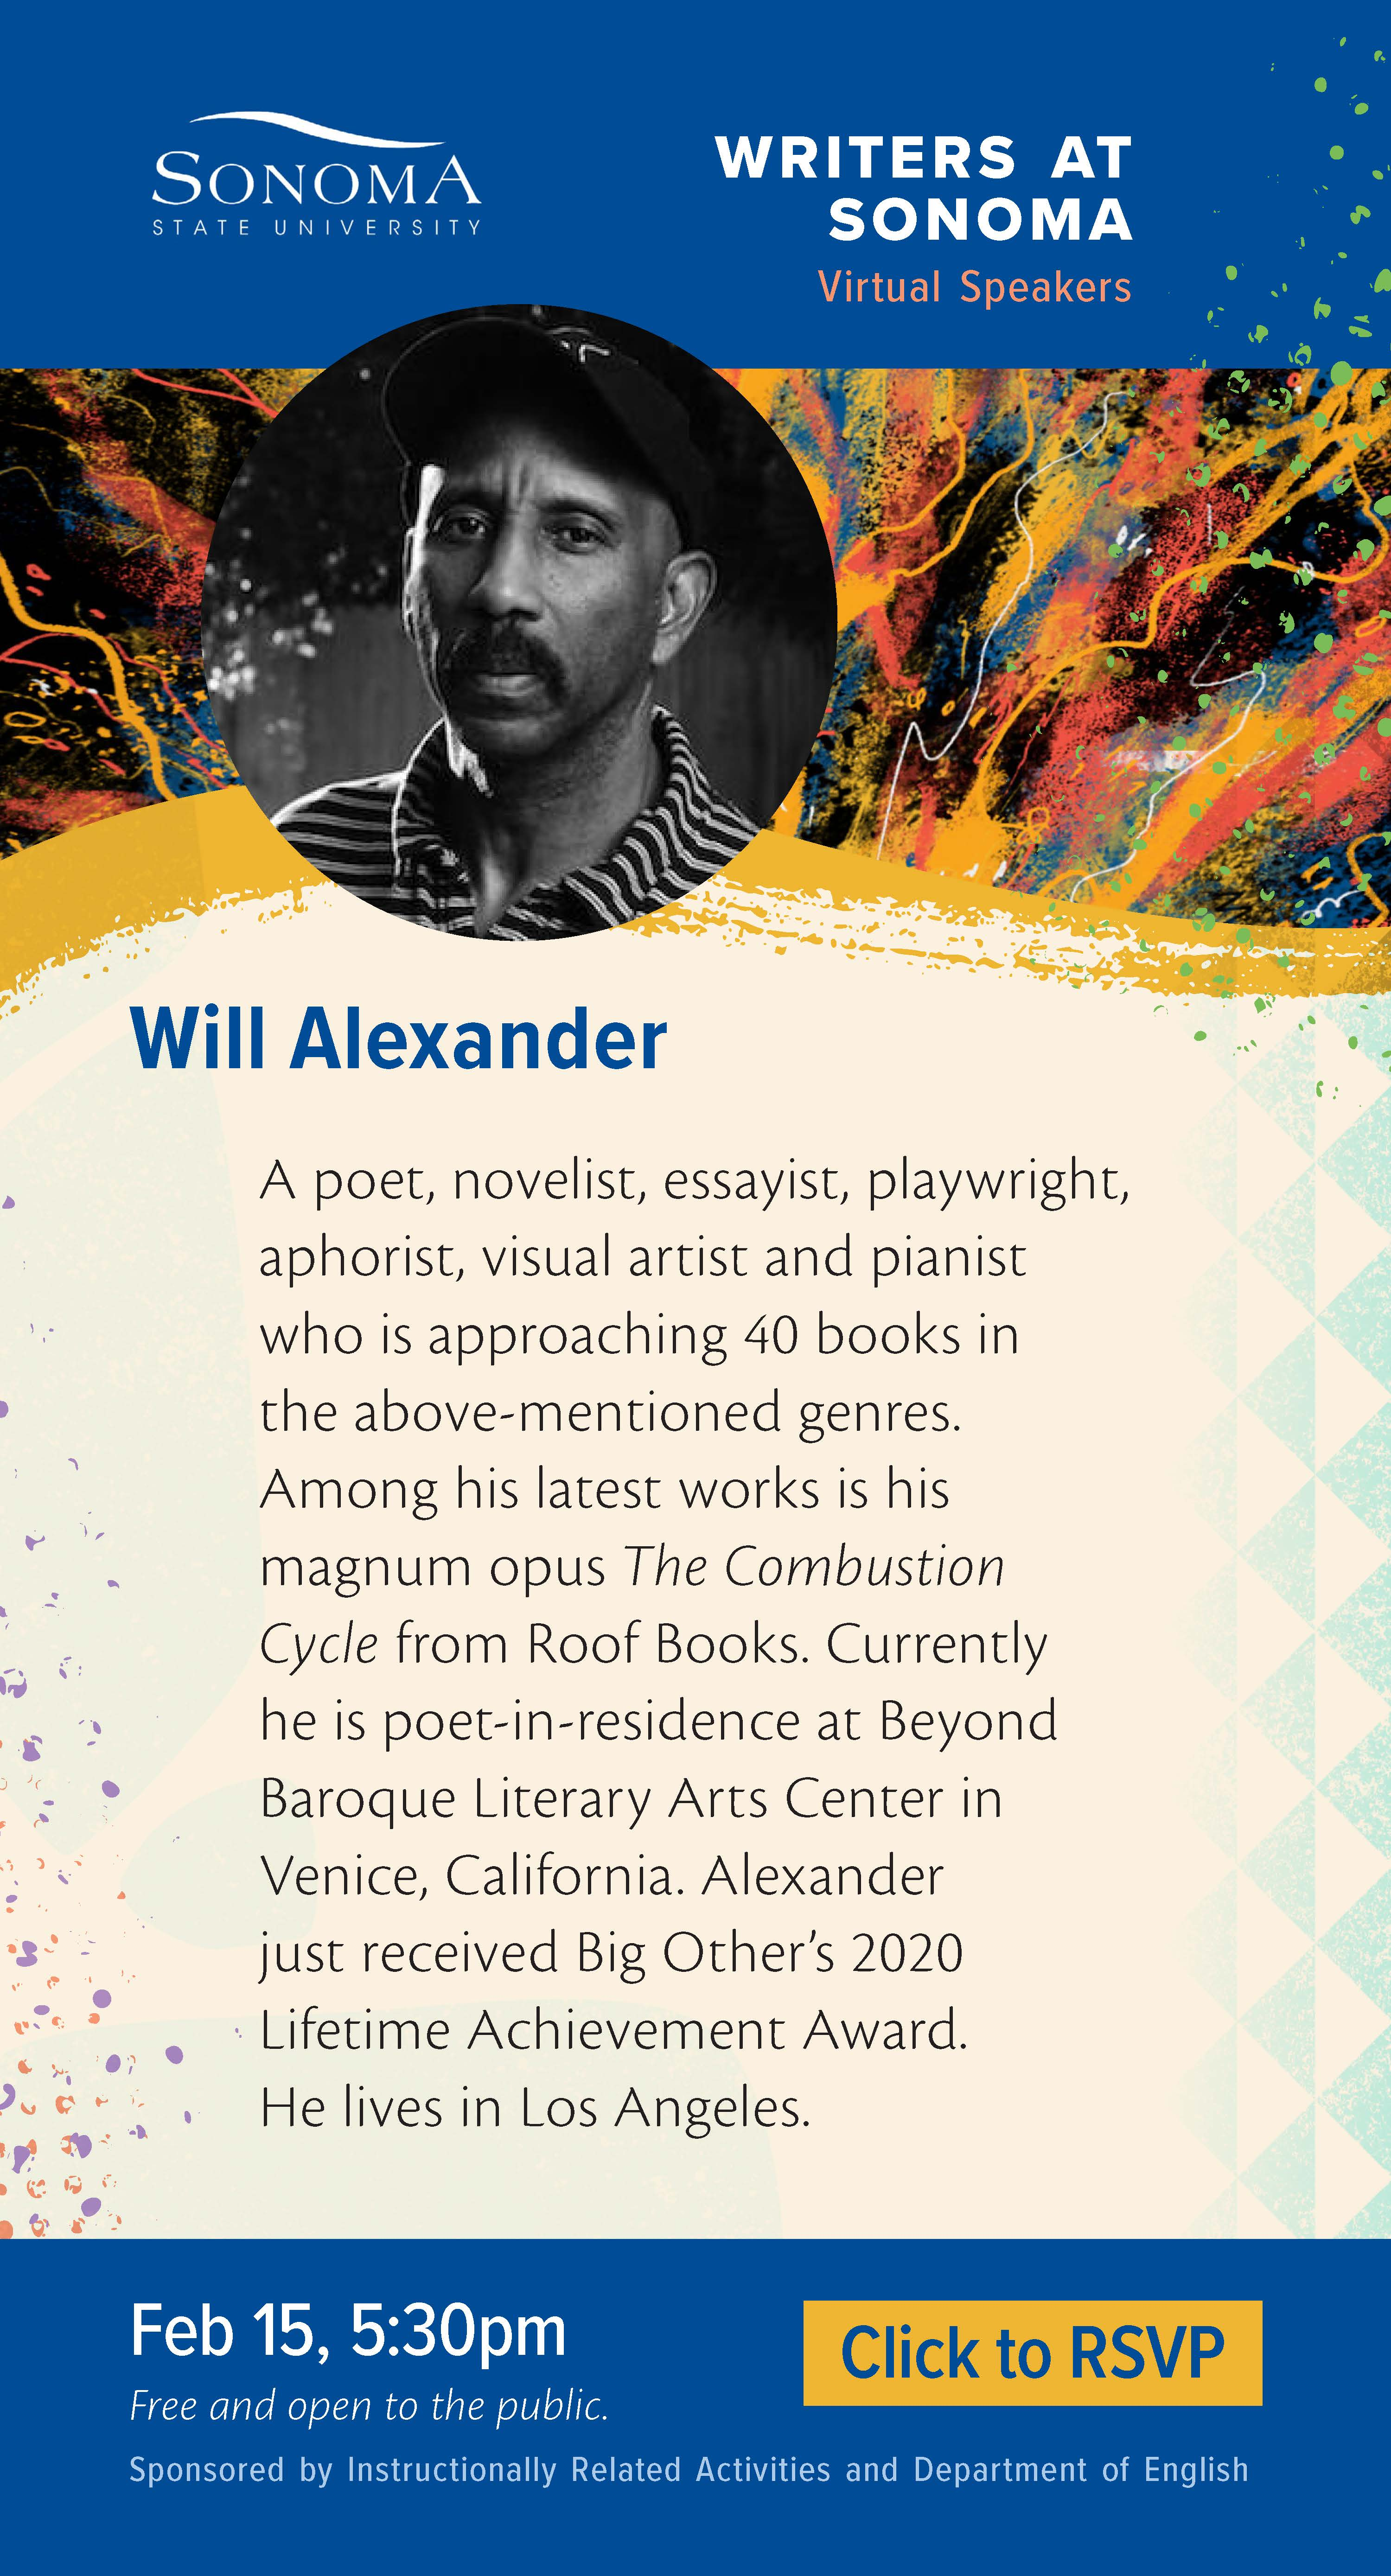 Will Alexander Writers at Sonoma